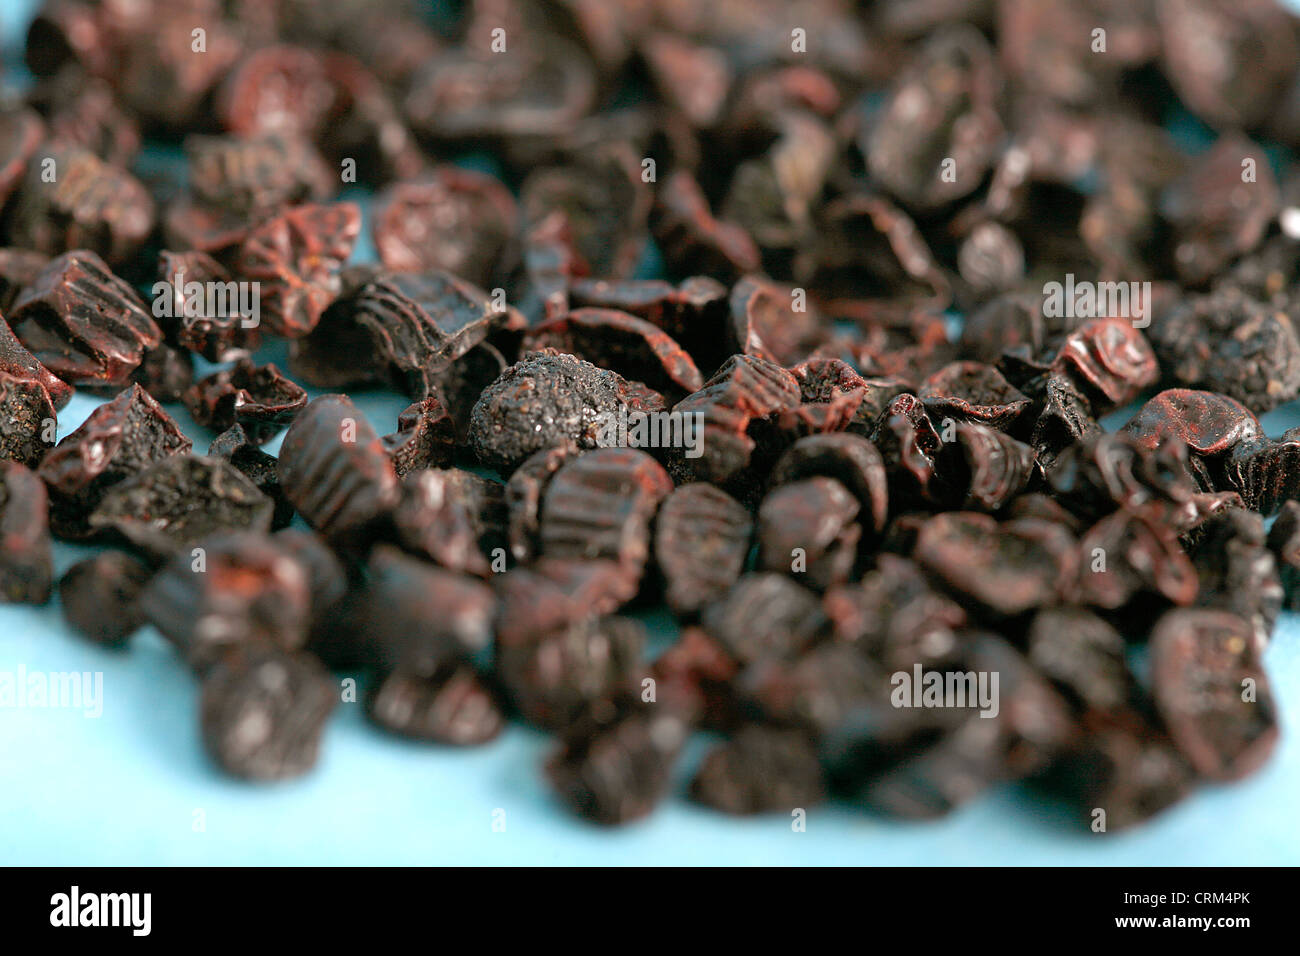 Red Dye Stock Photos & Red Dye Stock Images - Alamy